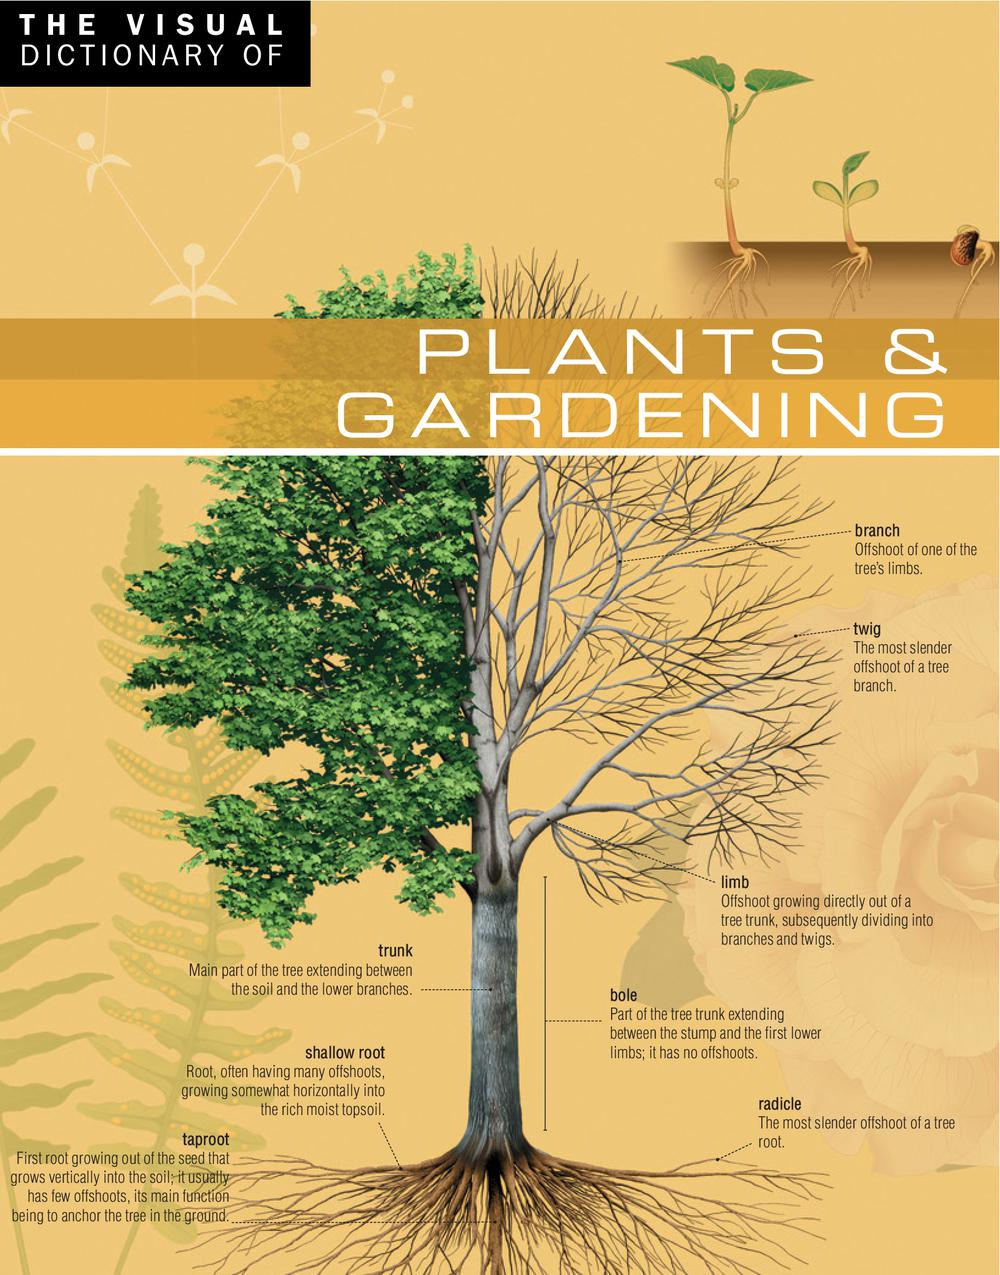 The Visual Dictionary of Plants & Gardening, Jean-Claude Corbeil